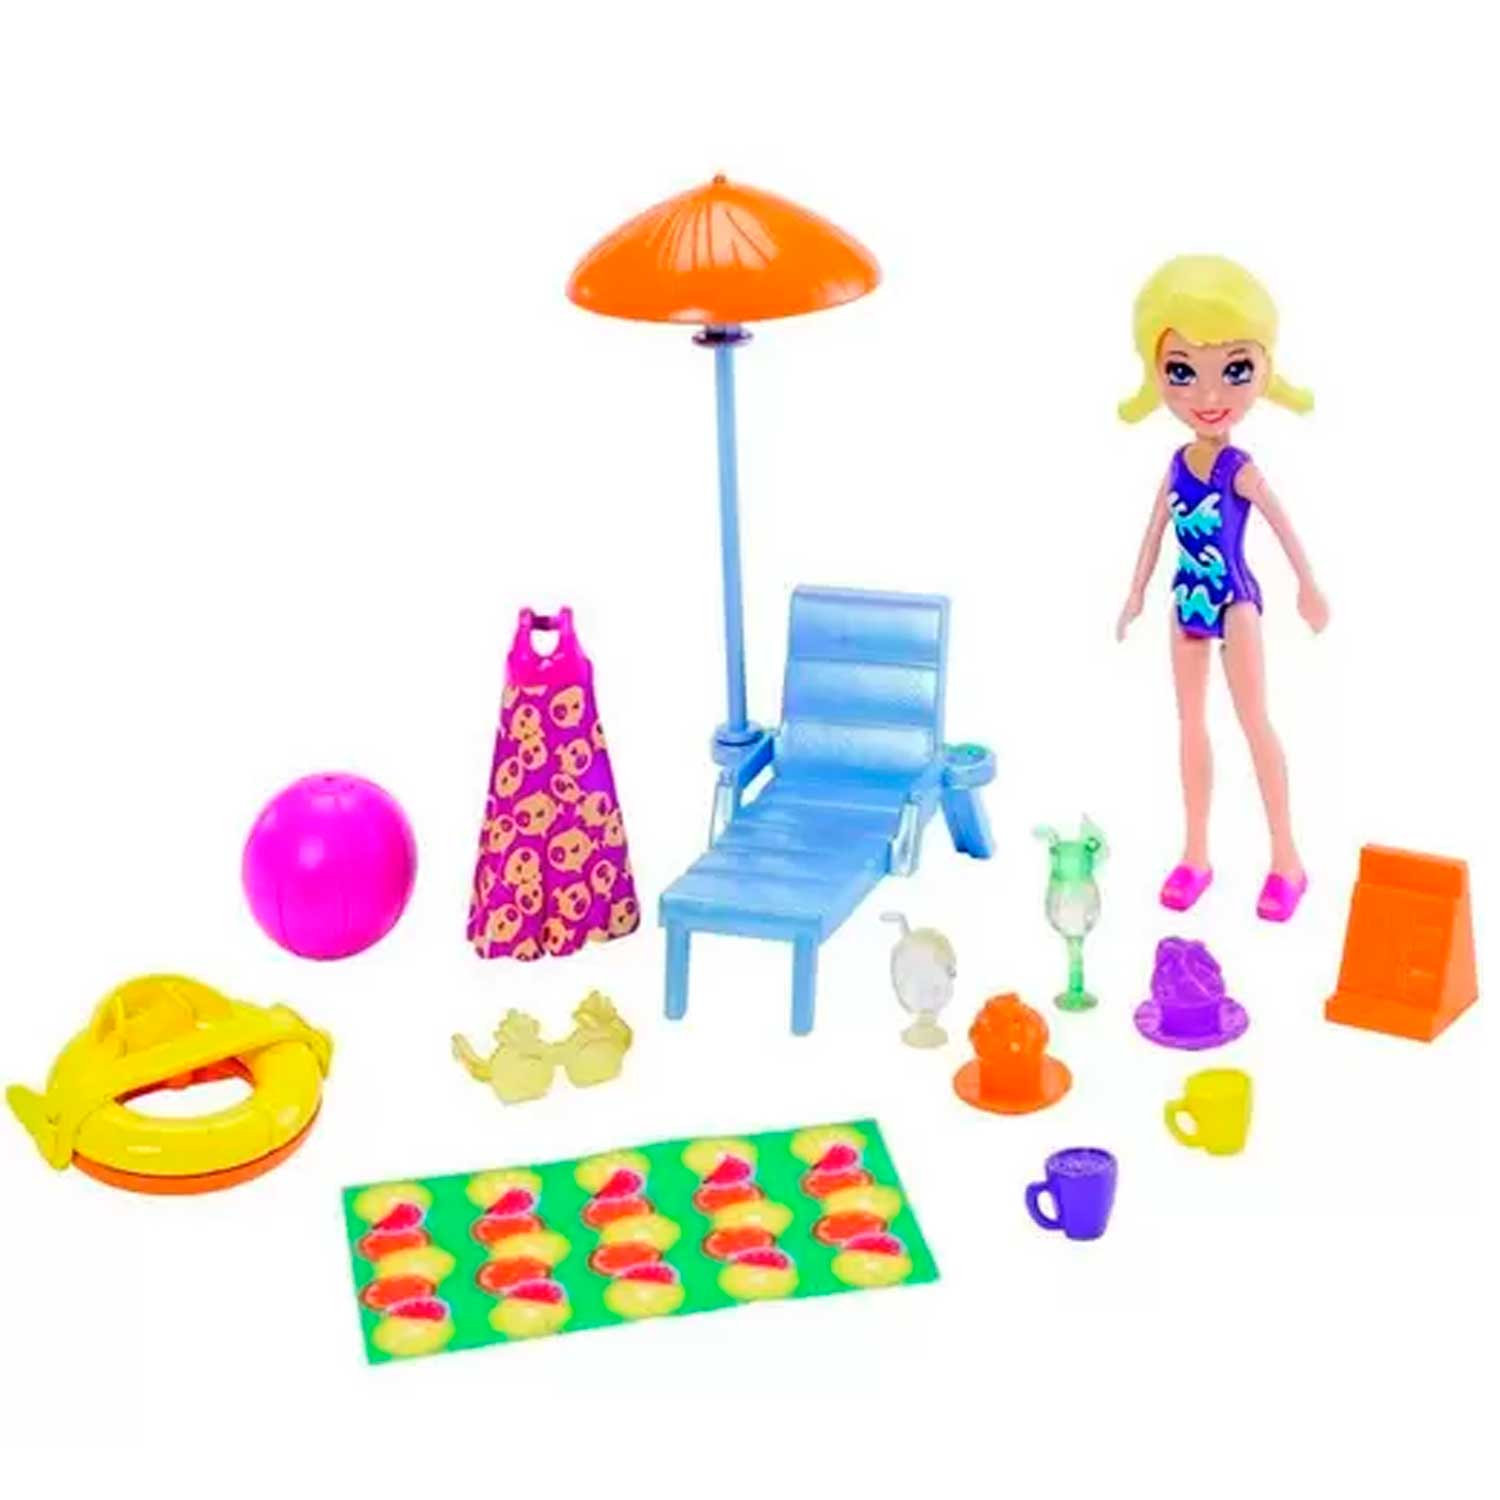 POLLY POCKET MEGA TRAILER MATTEL REF:FRY86